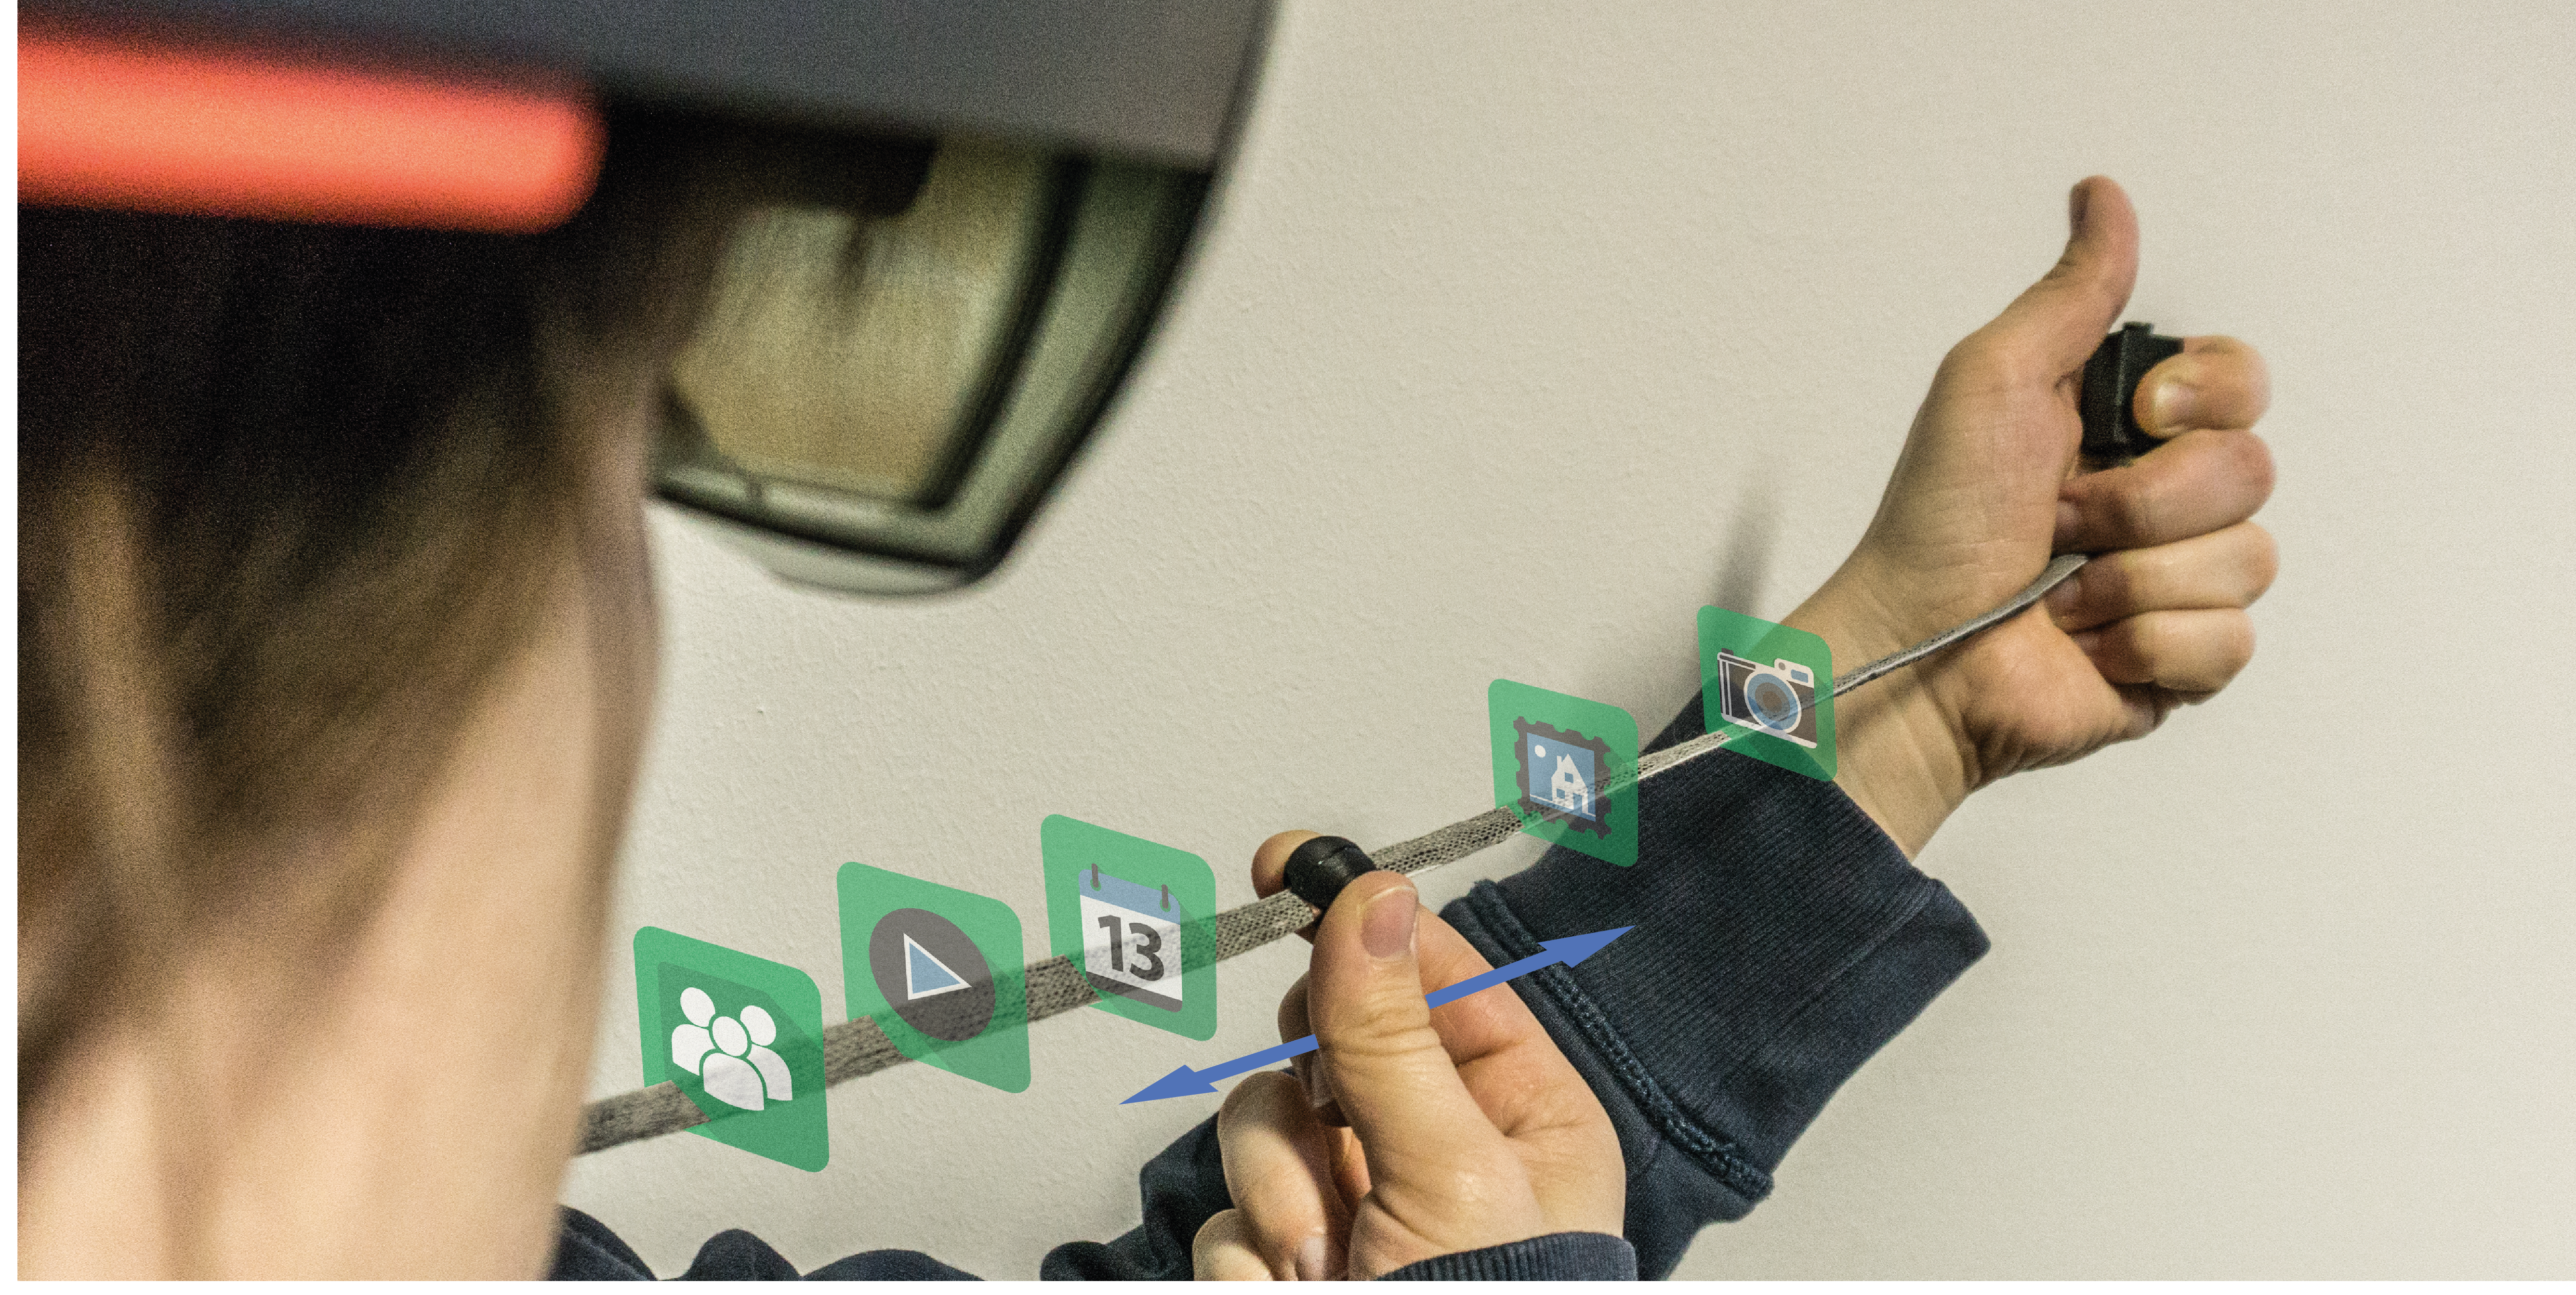 Preview for research project: ARCord: Visually Augmented Interactive Cords for Mobile Interaction